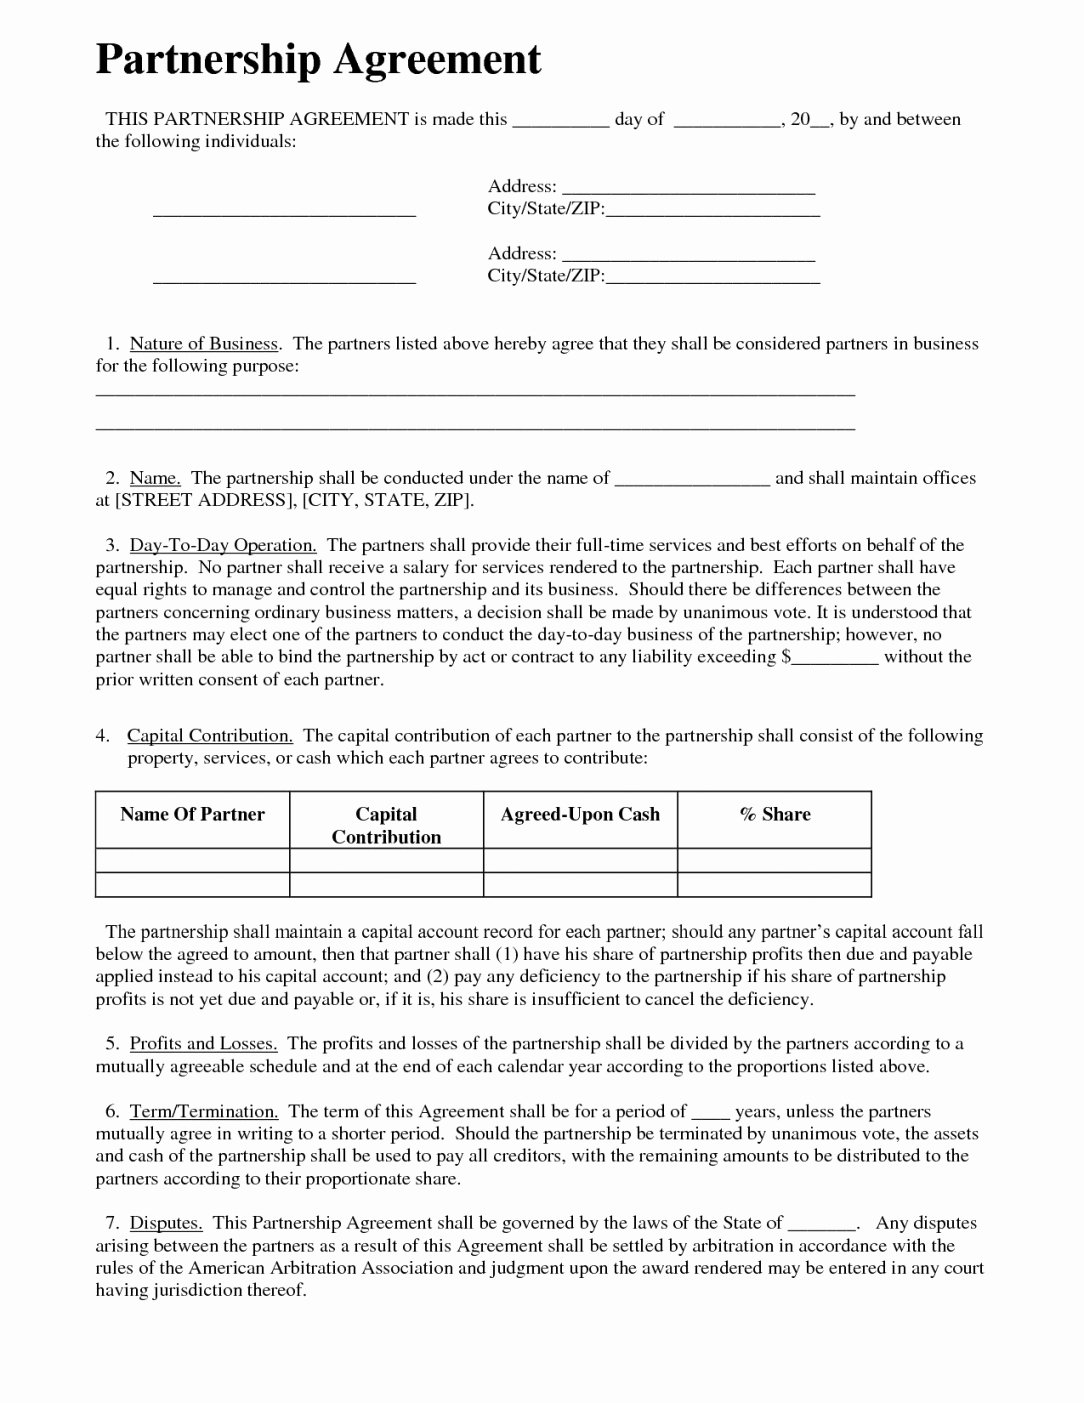 Boat Purchase Agreement Template Fresh Boat Partnership Agreement Template